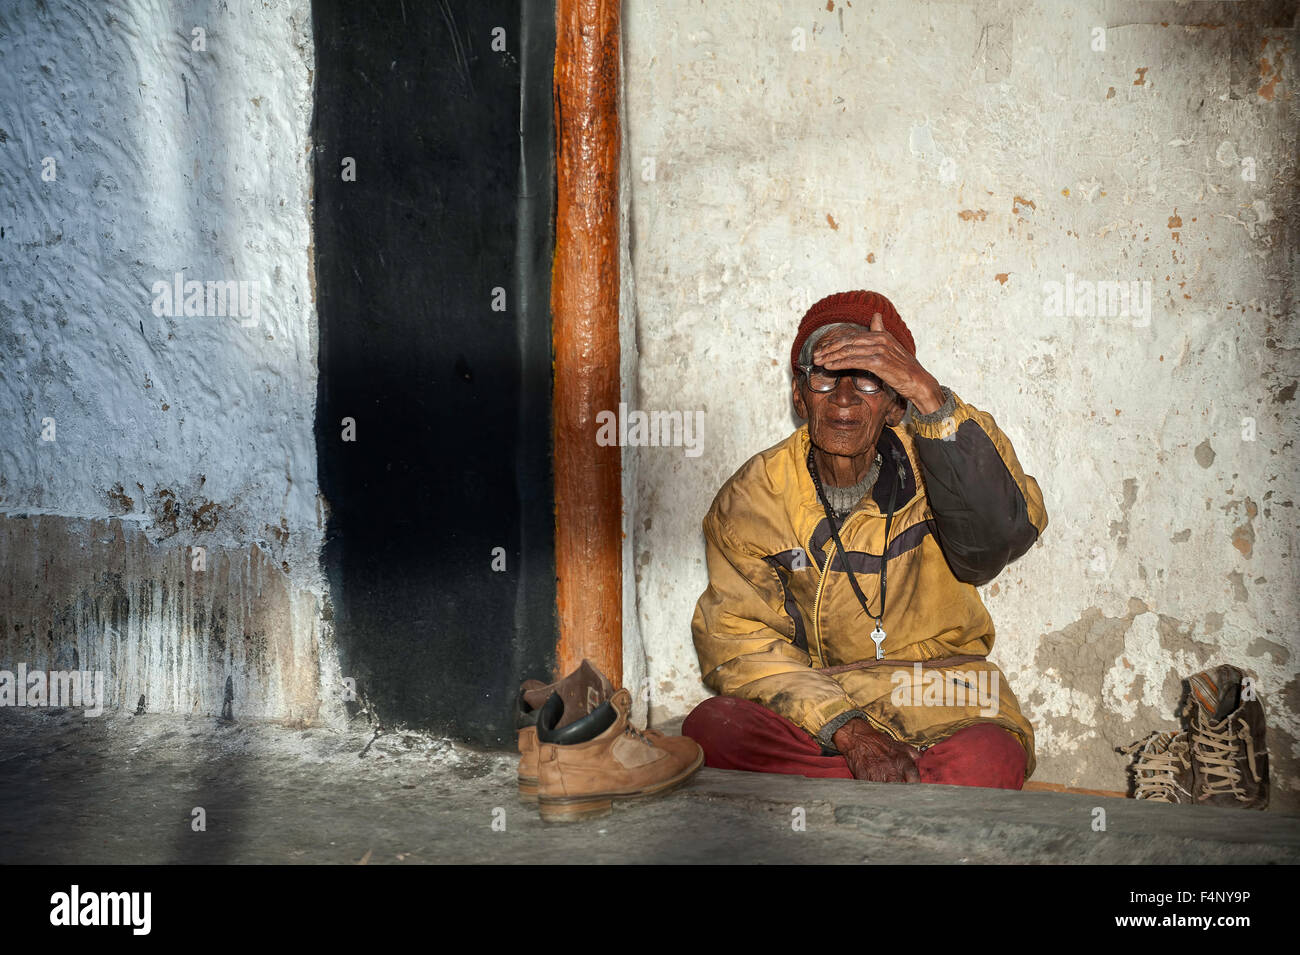 Old Monk is relaxing outside monastery - Stock Image